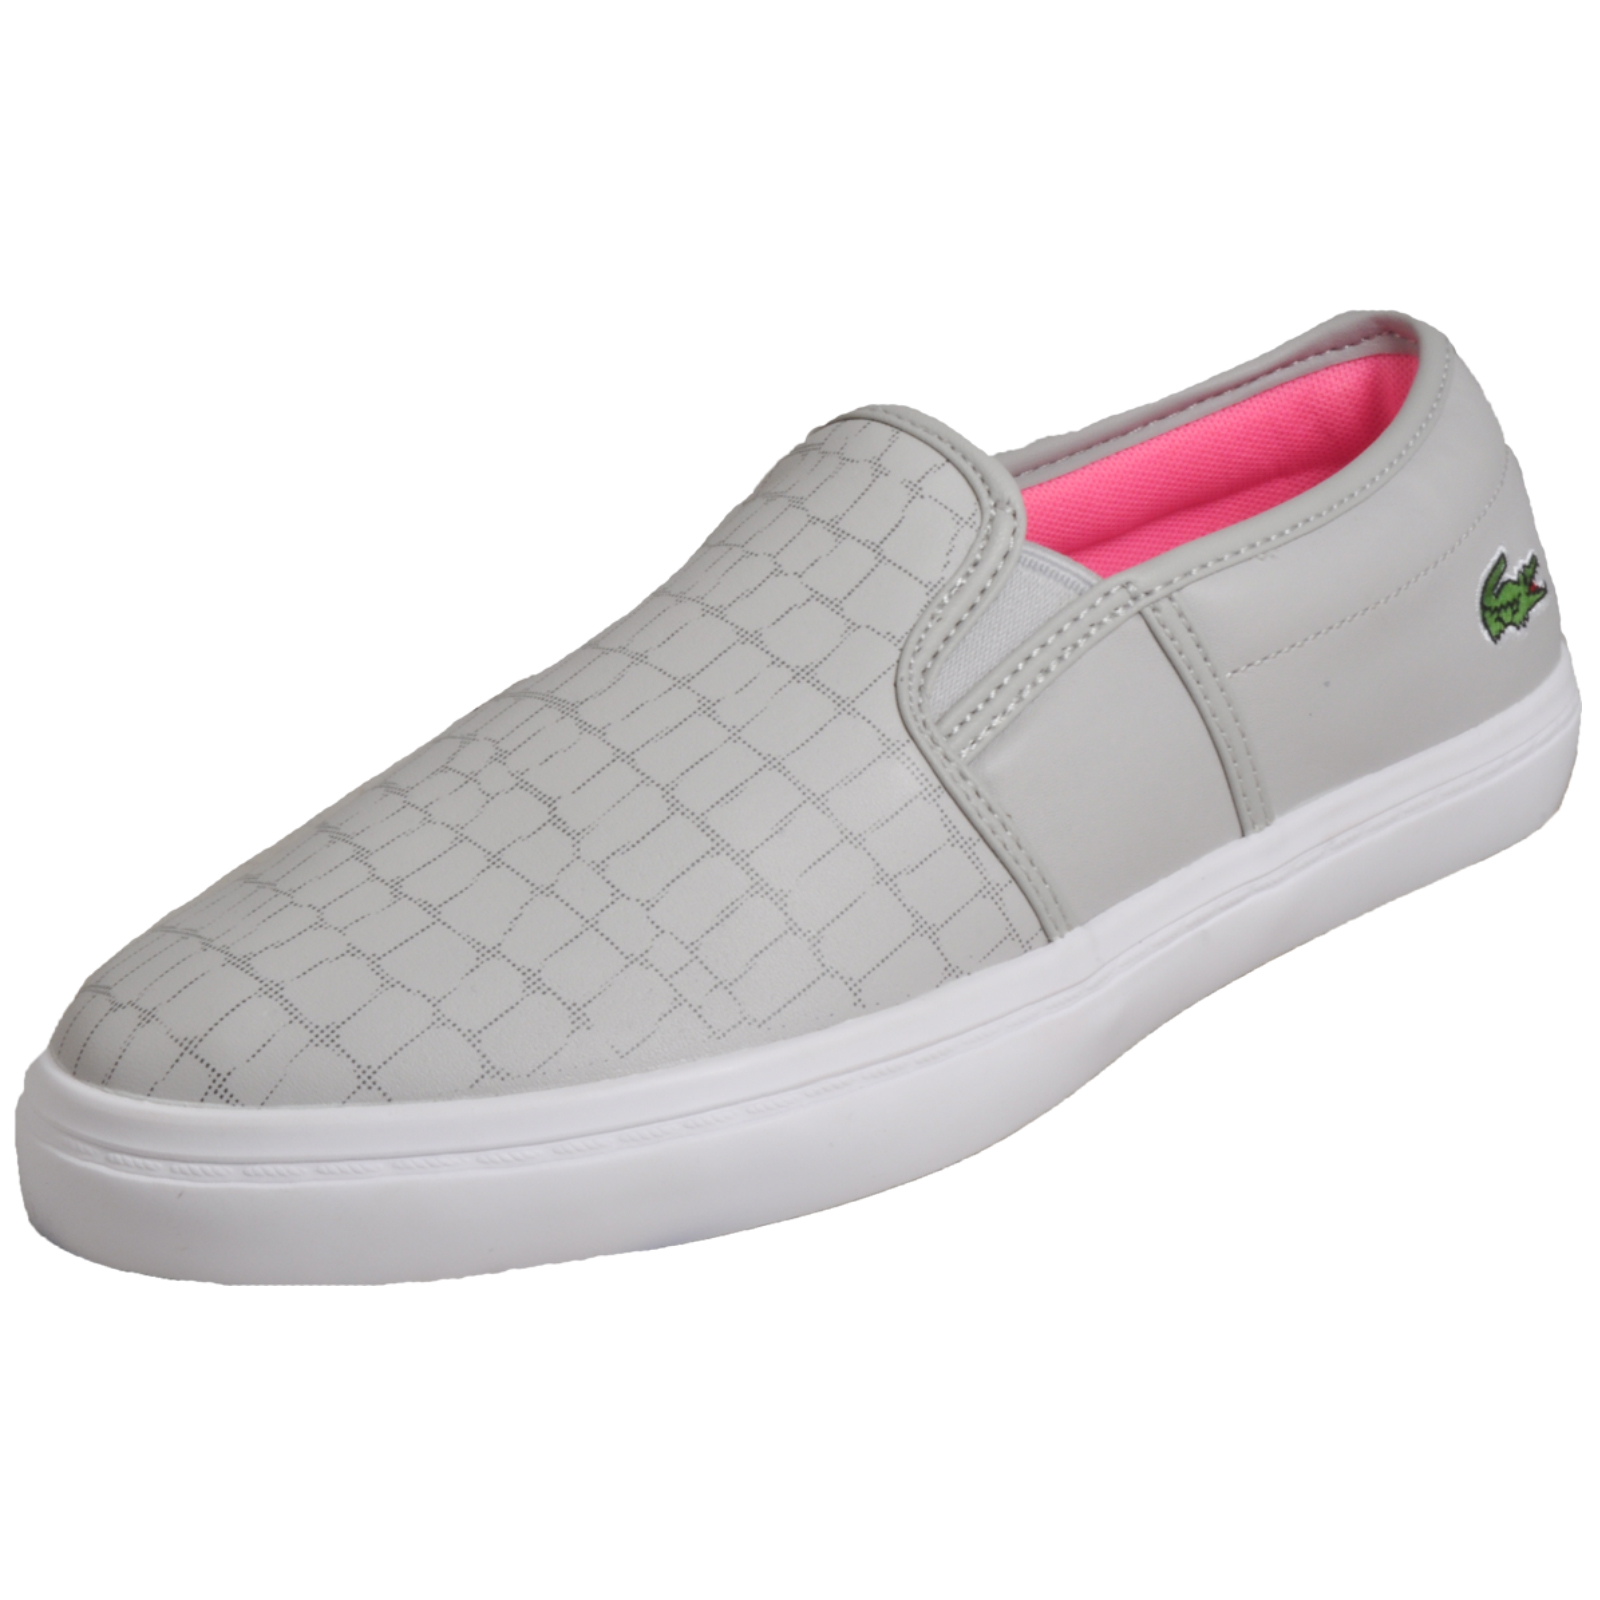 8ad71c435d88d Lacoste Gazon 118 Women s Slip-On Casual Designer Trainers Grey